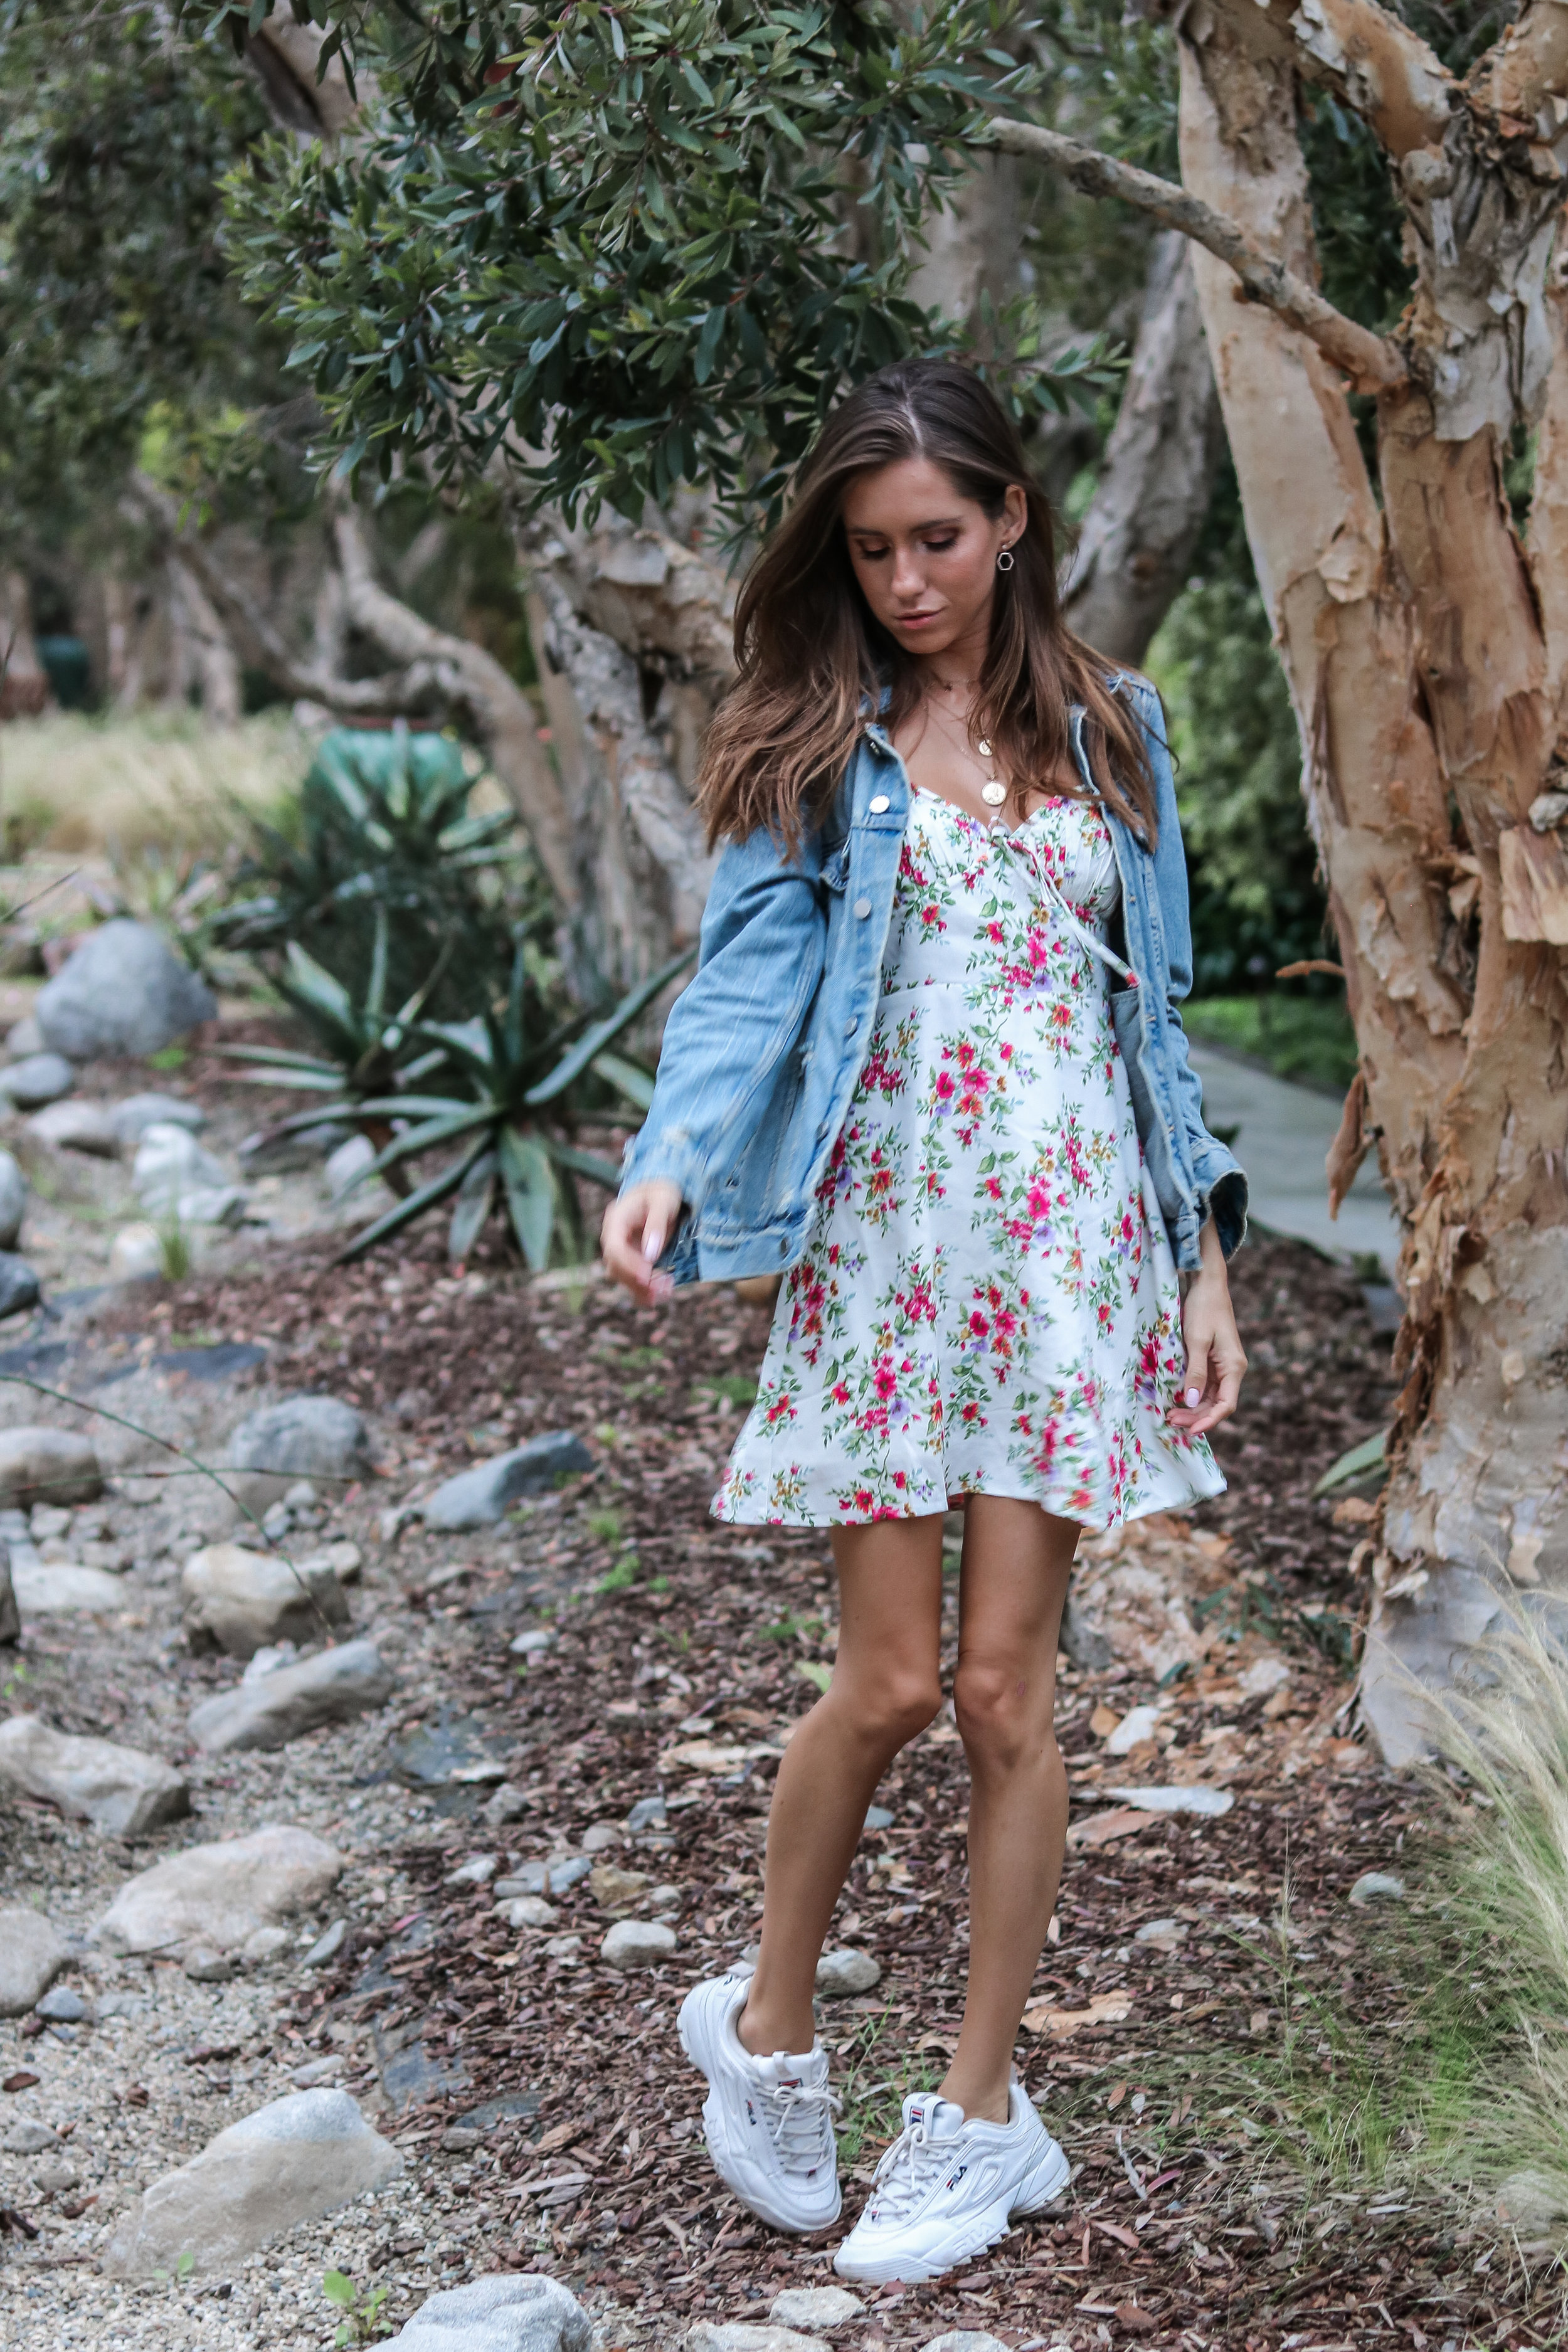 The Hungarian Brunette - 3 ways to wear a denim jacket: feminine and casual, mini dress and sneakers